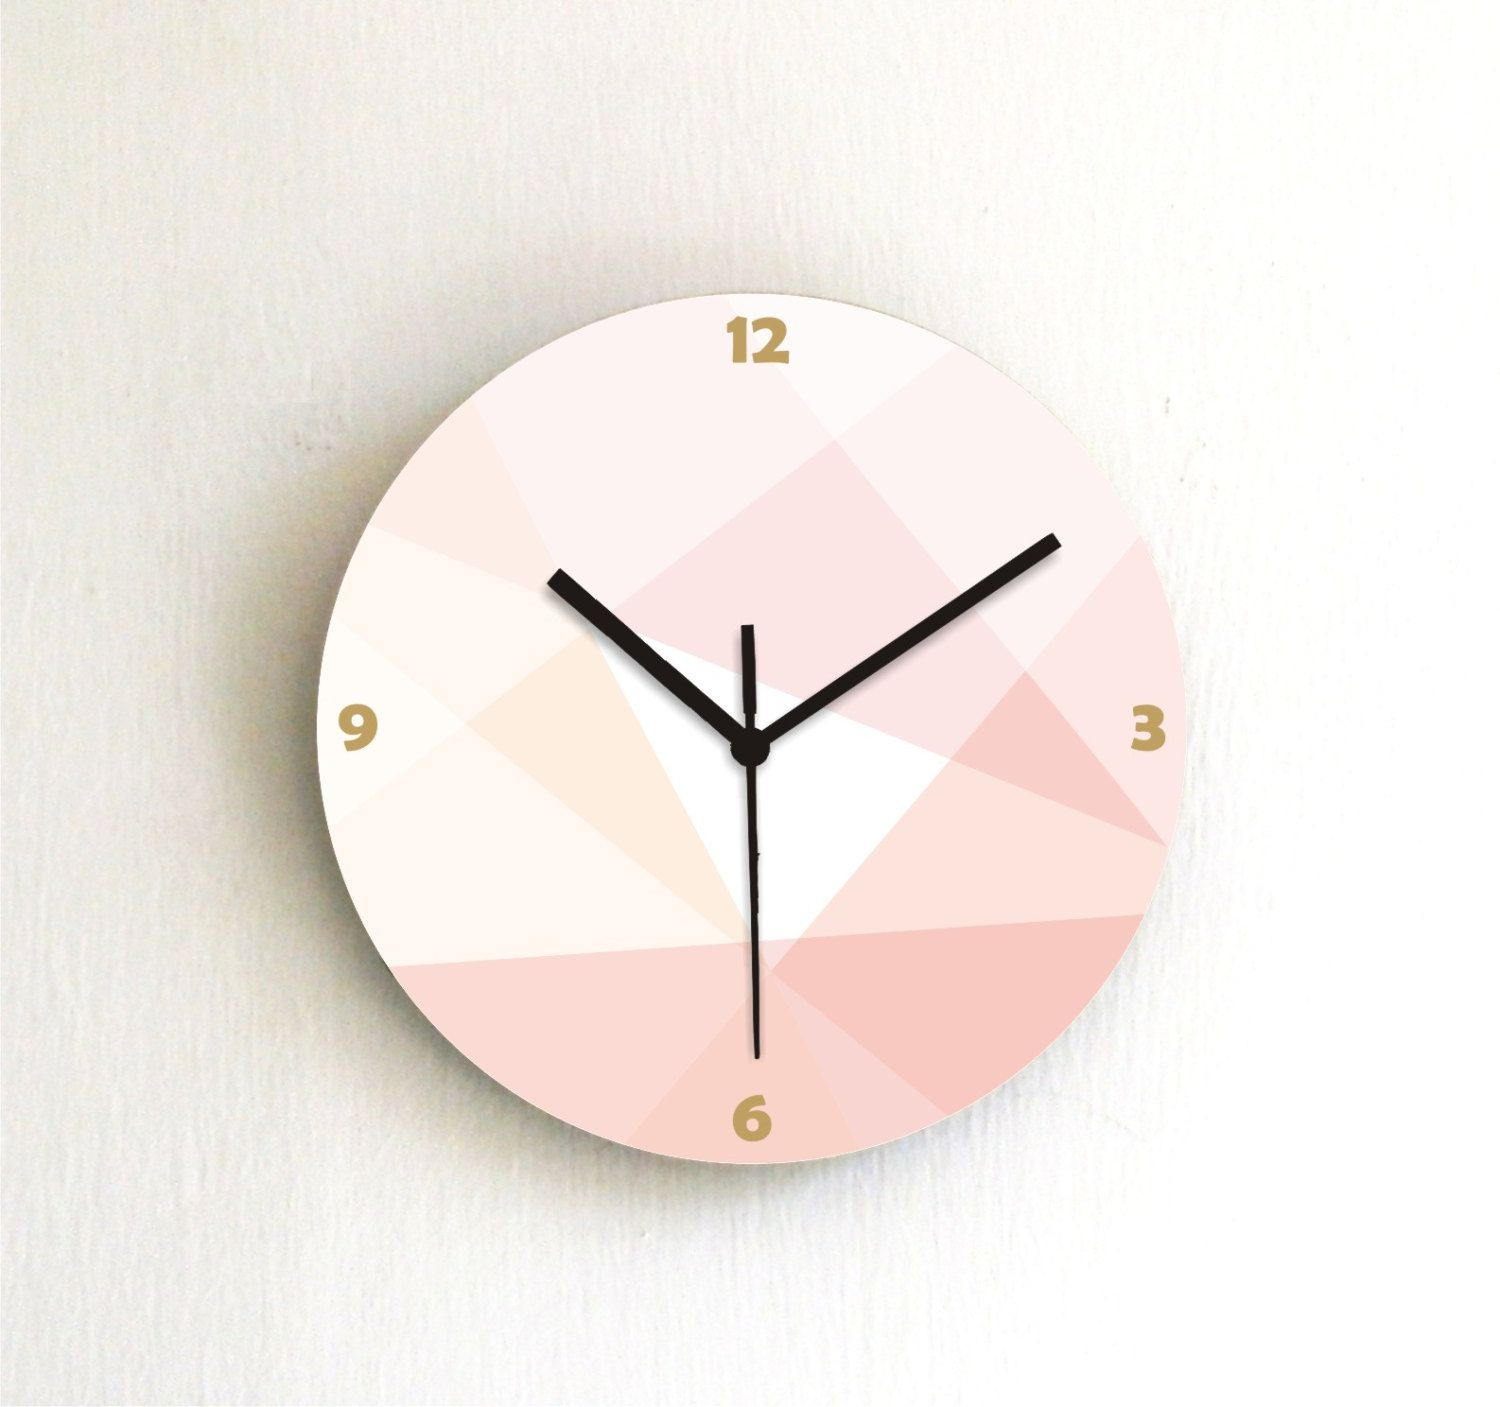 Wall clock peach pink salmon beige soft pastel round clock by ArtisEverything on Etsy